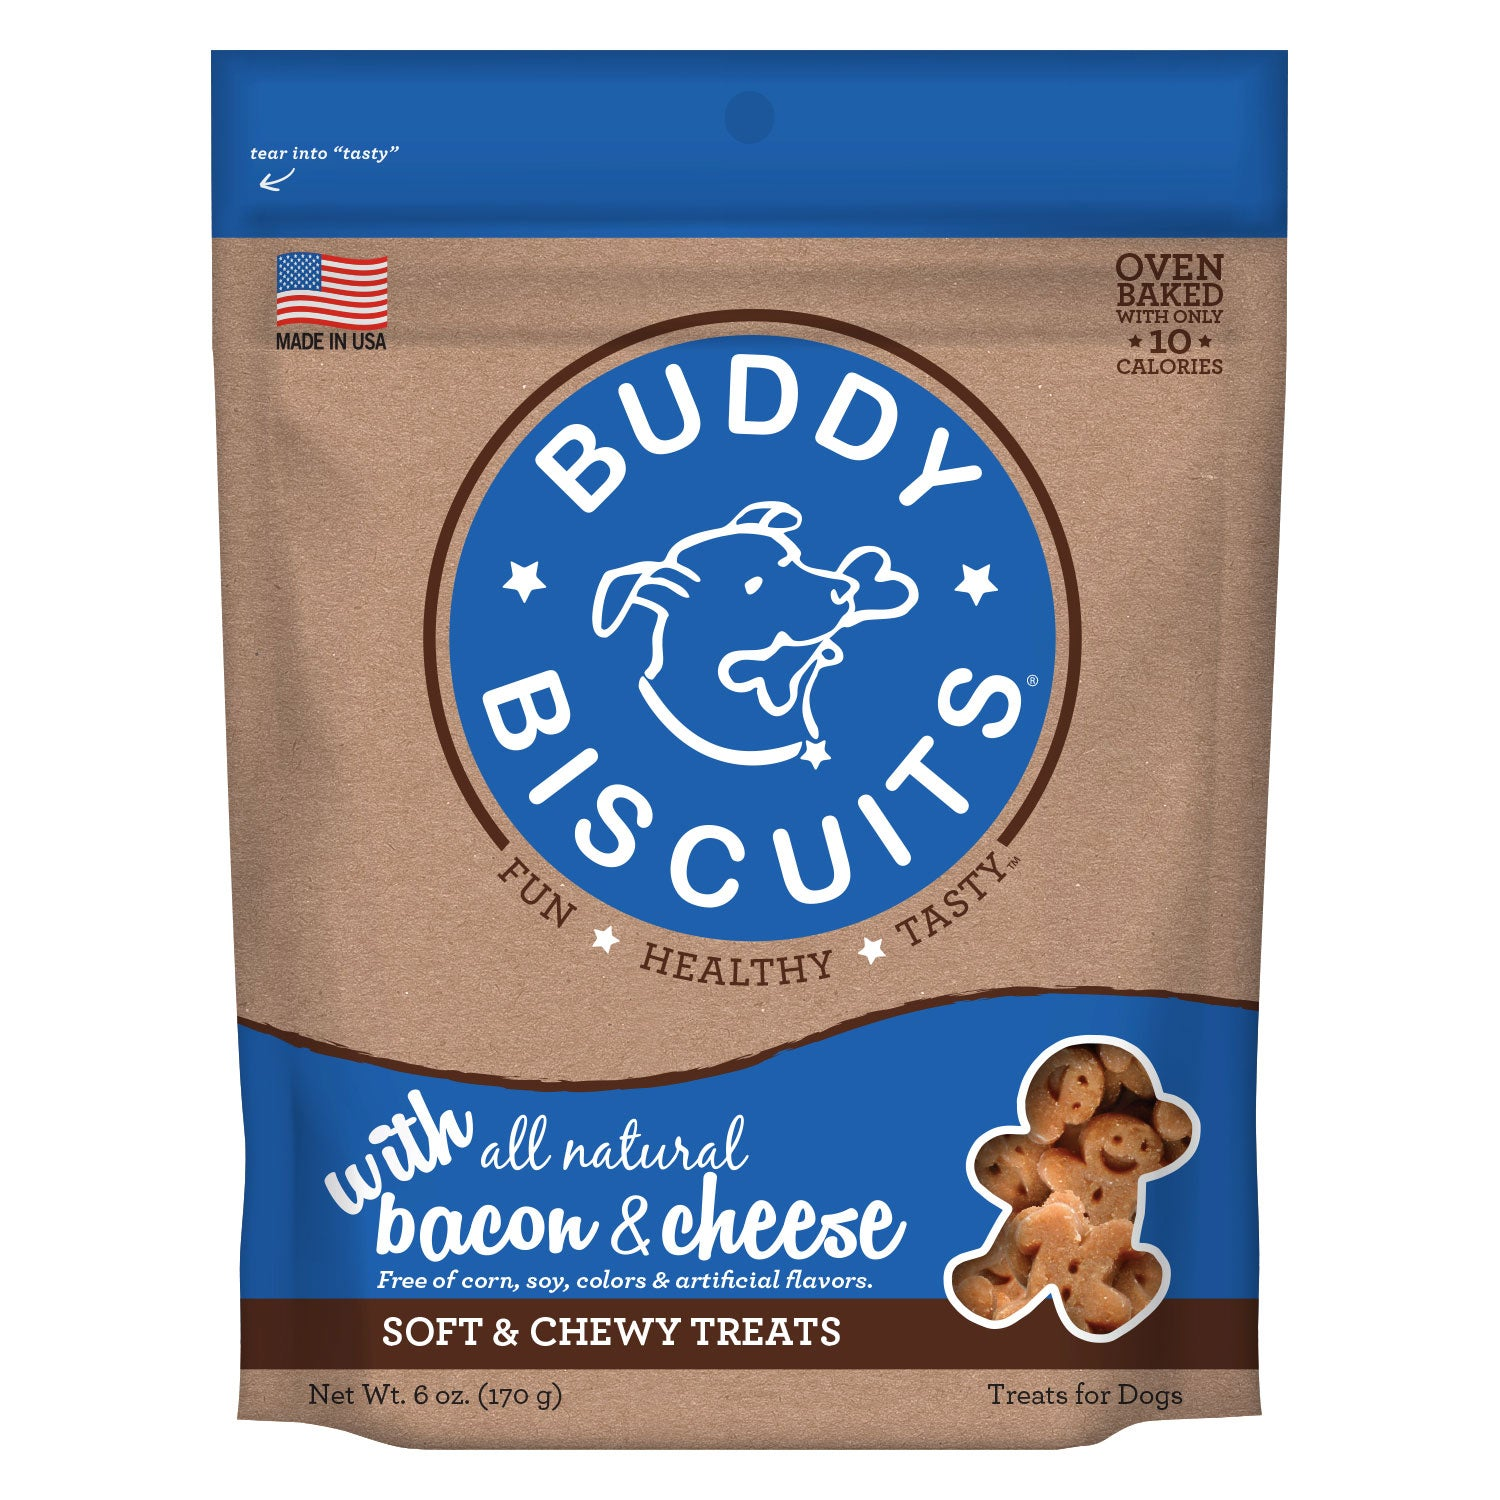 Buddy Biscuits Original Soft and Chewy Dog Treats Bacon and Cheese 6 ounces Dog Treats and Bones - London the Local